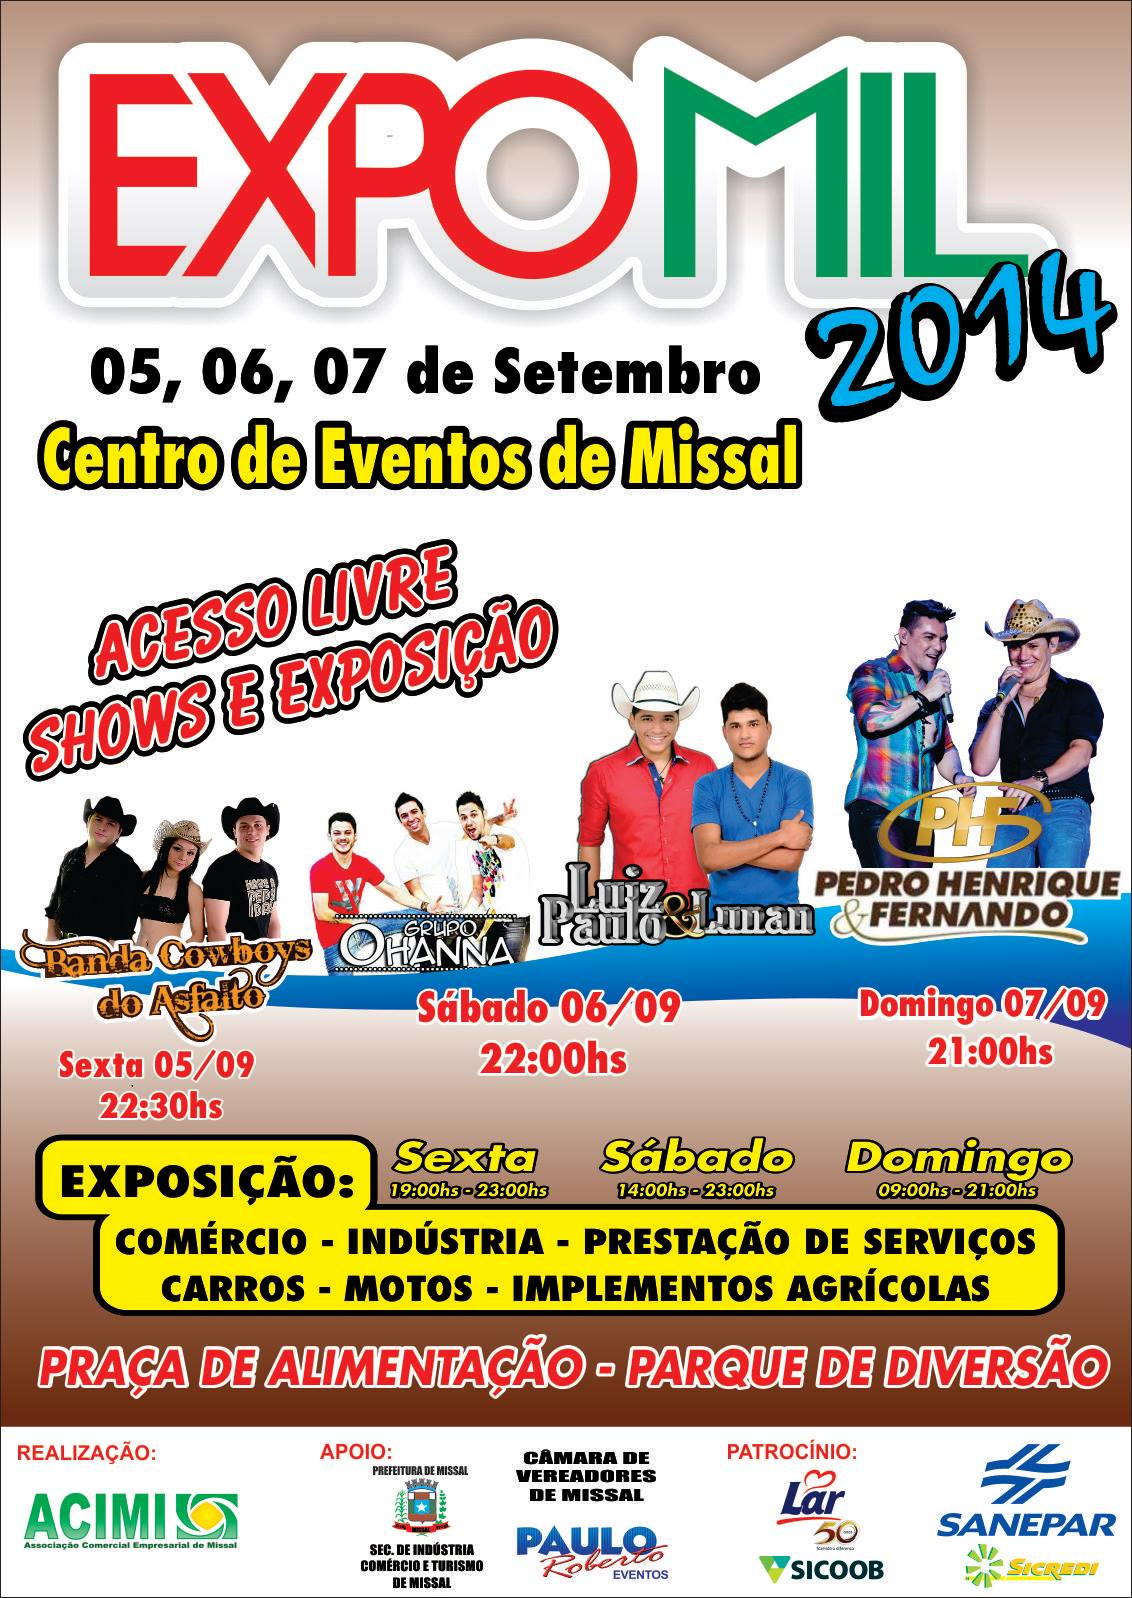 EXPOMIL 2014